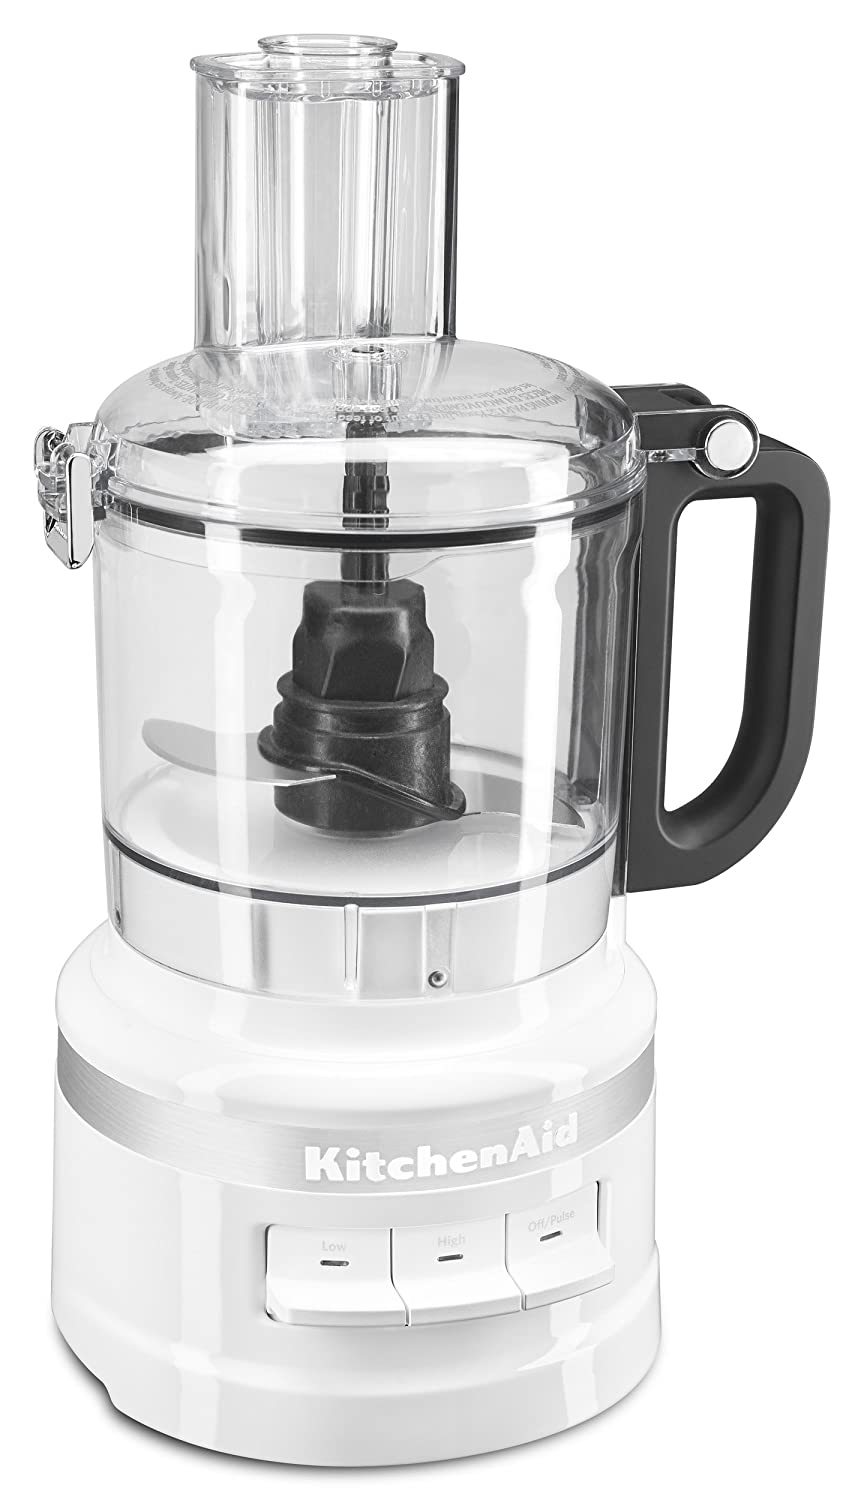 KitchenAid KFP0718WH 7-Cup Food Processor Chop, Puree, Shred and Slice - White